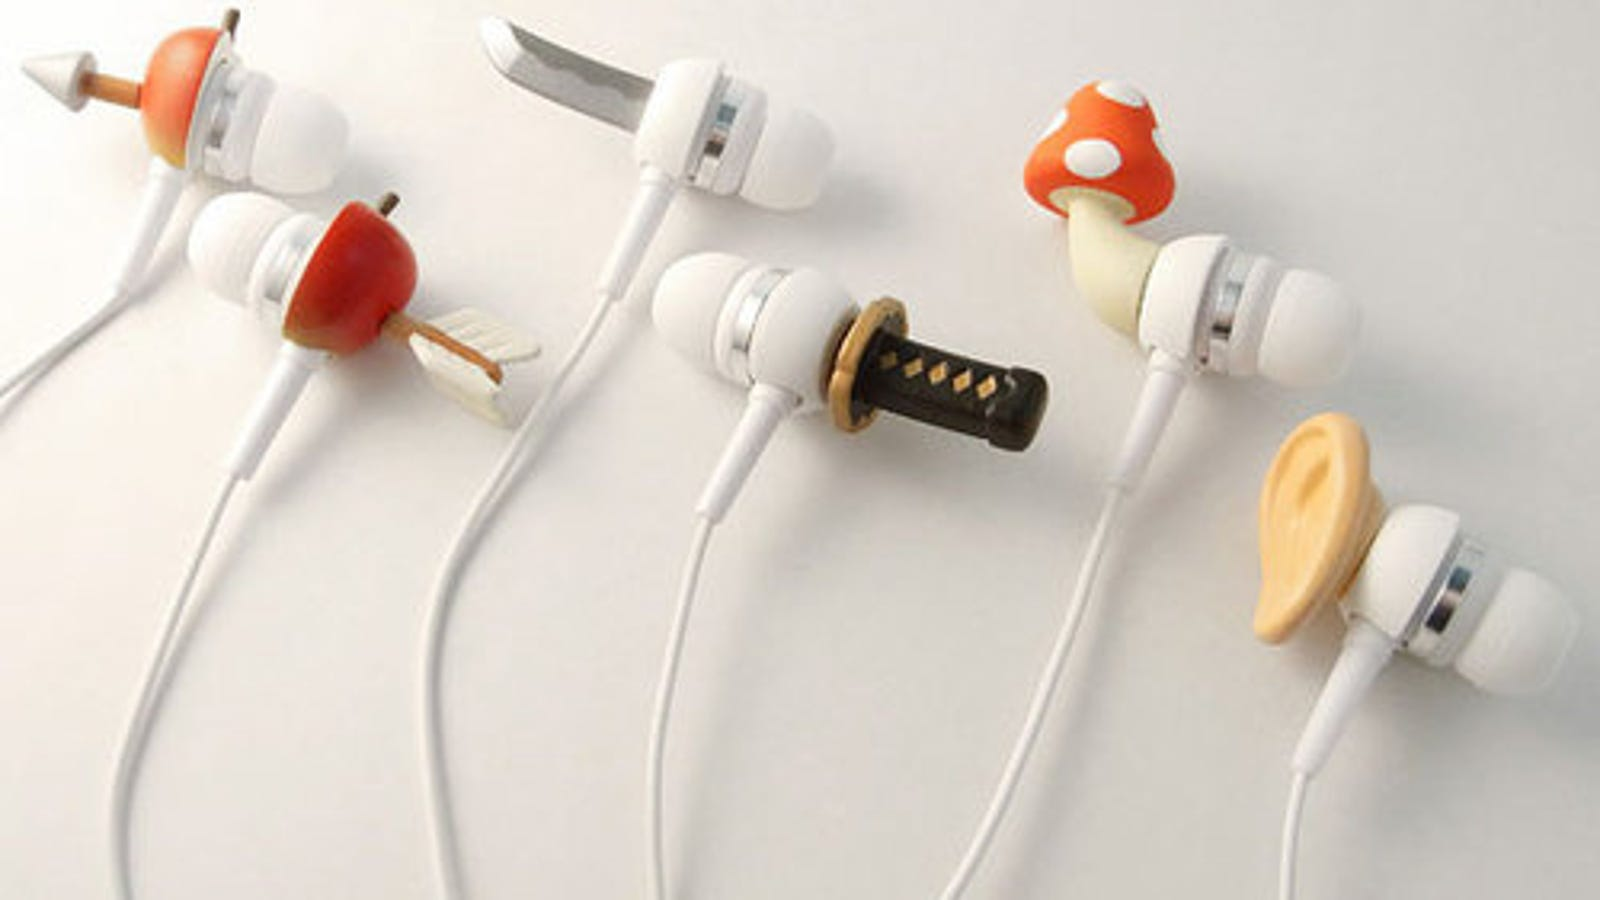 shure noise cancelling earphones